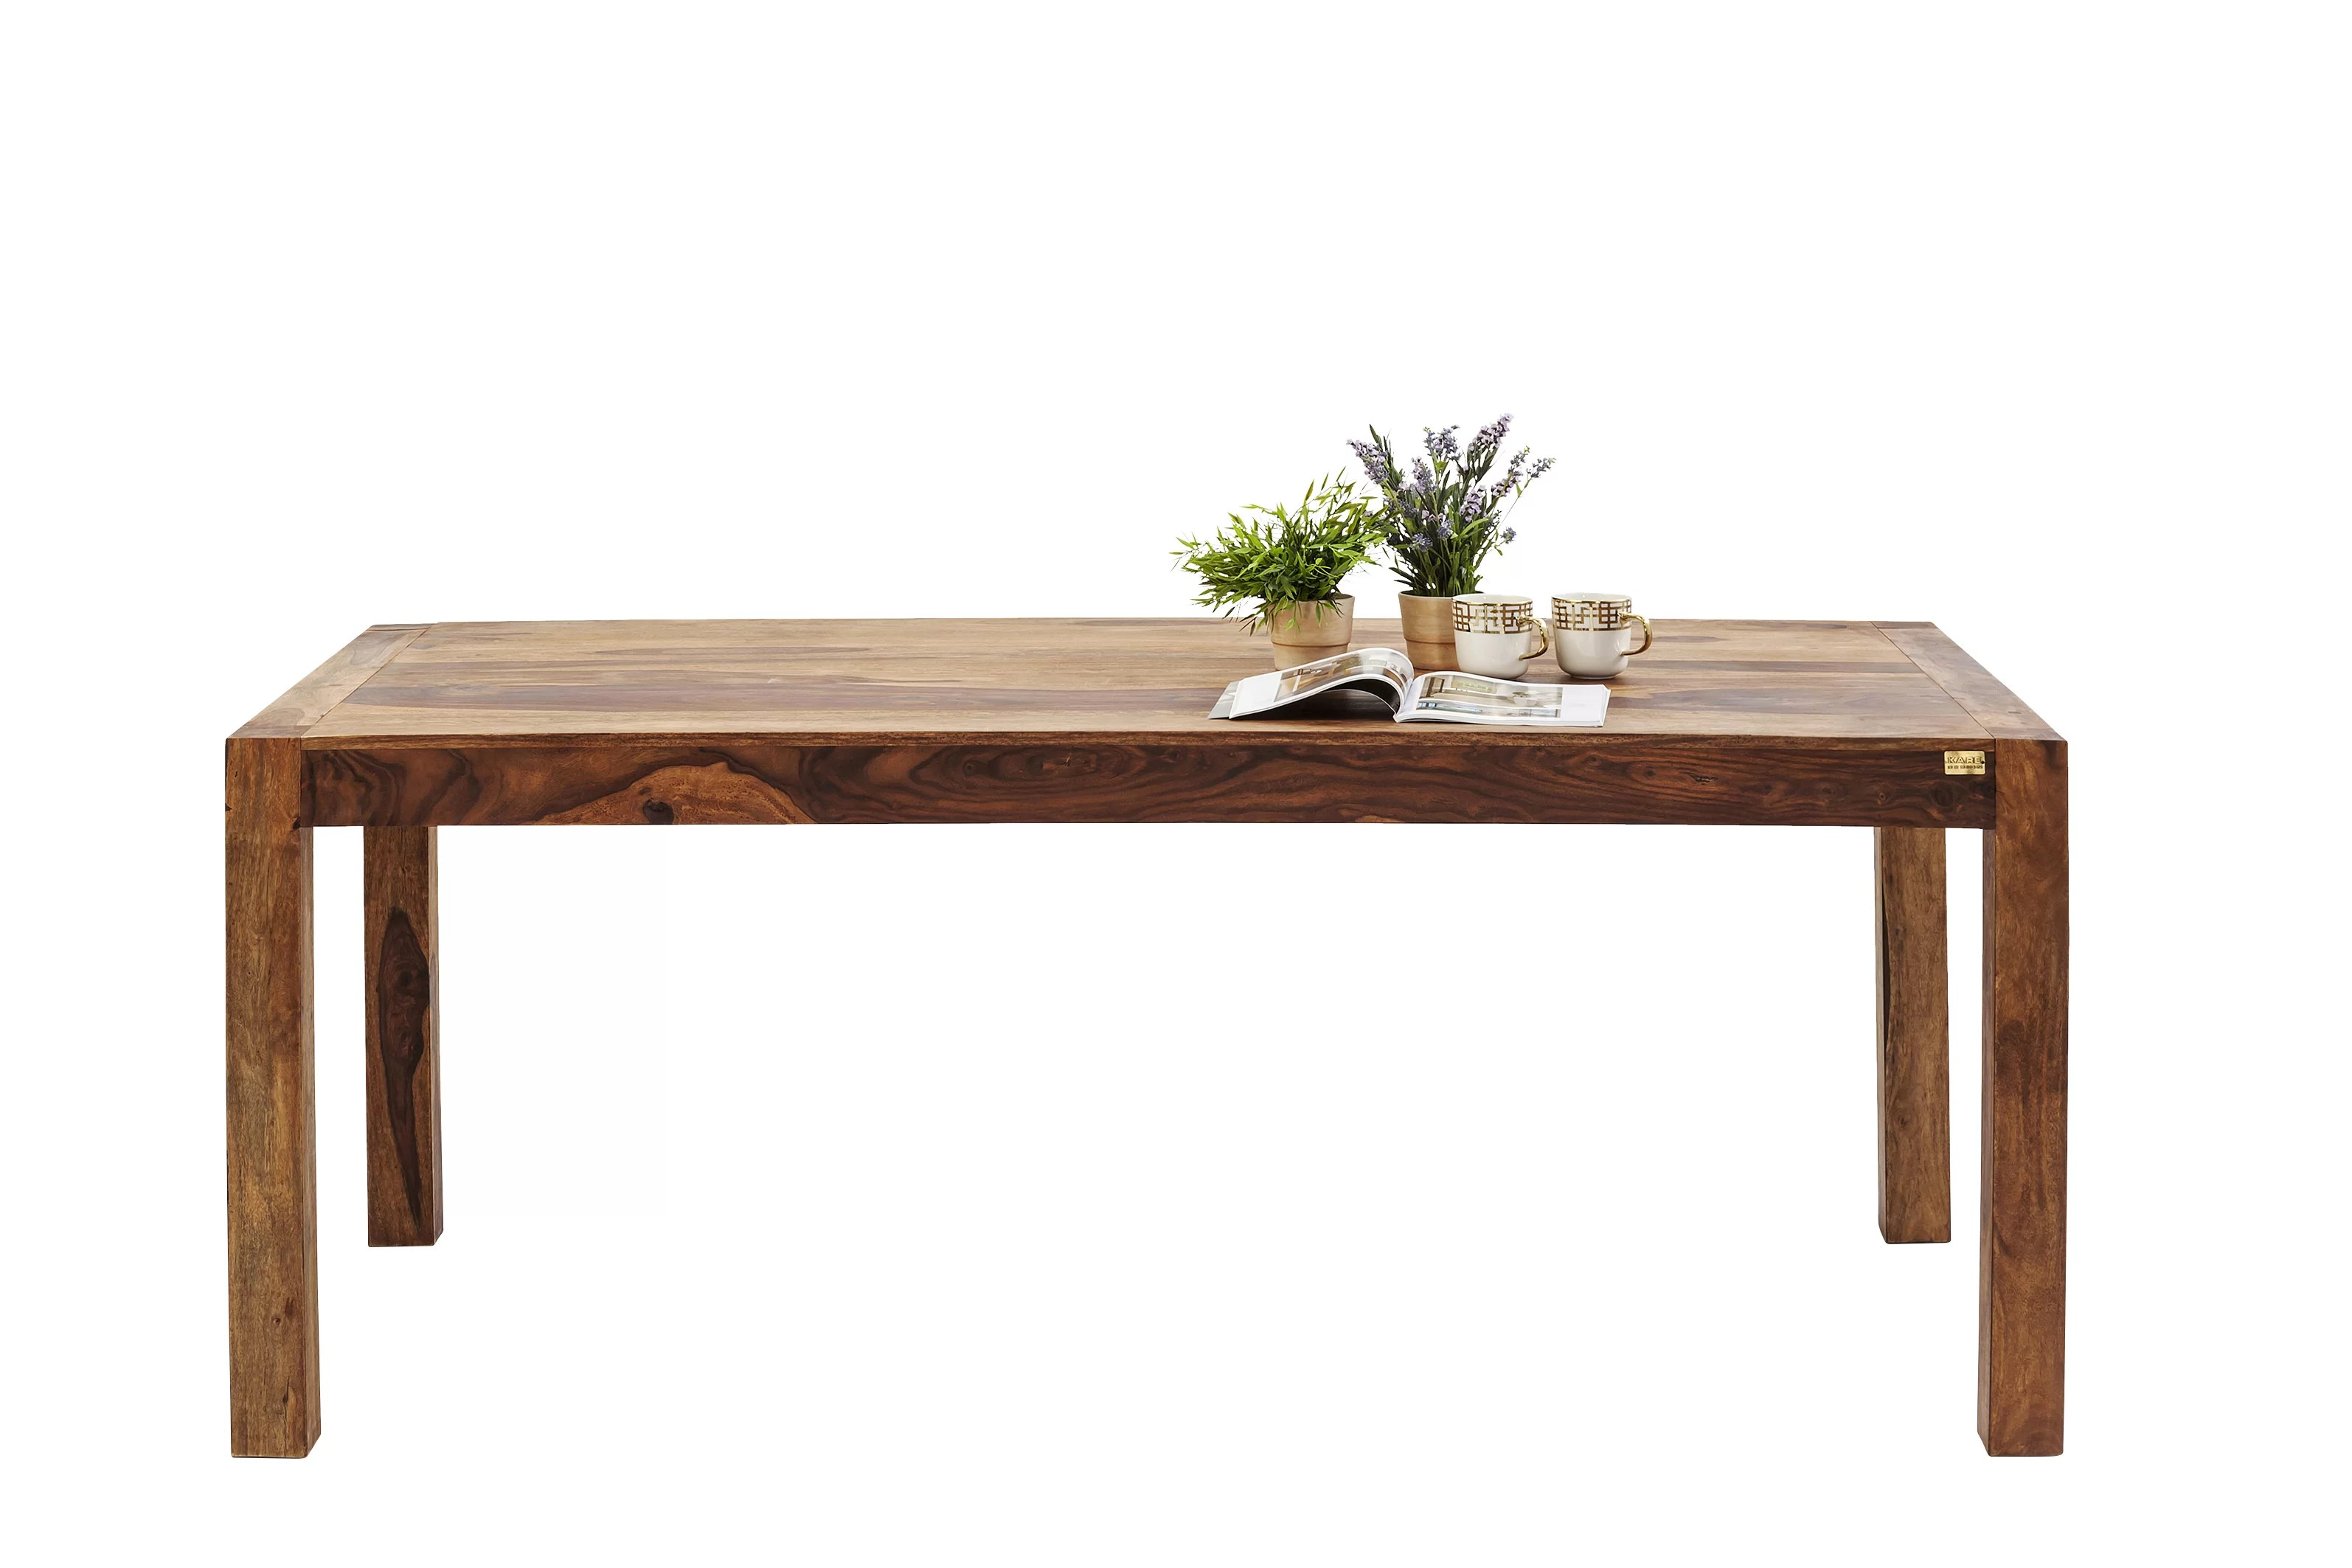 Kare Authentico Authentico Dining Table